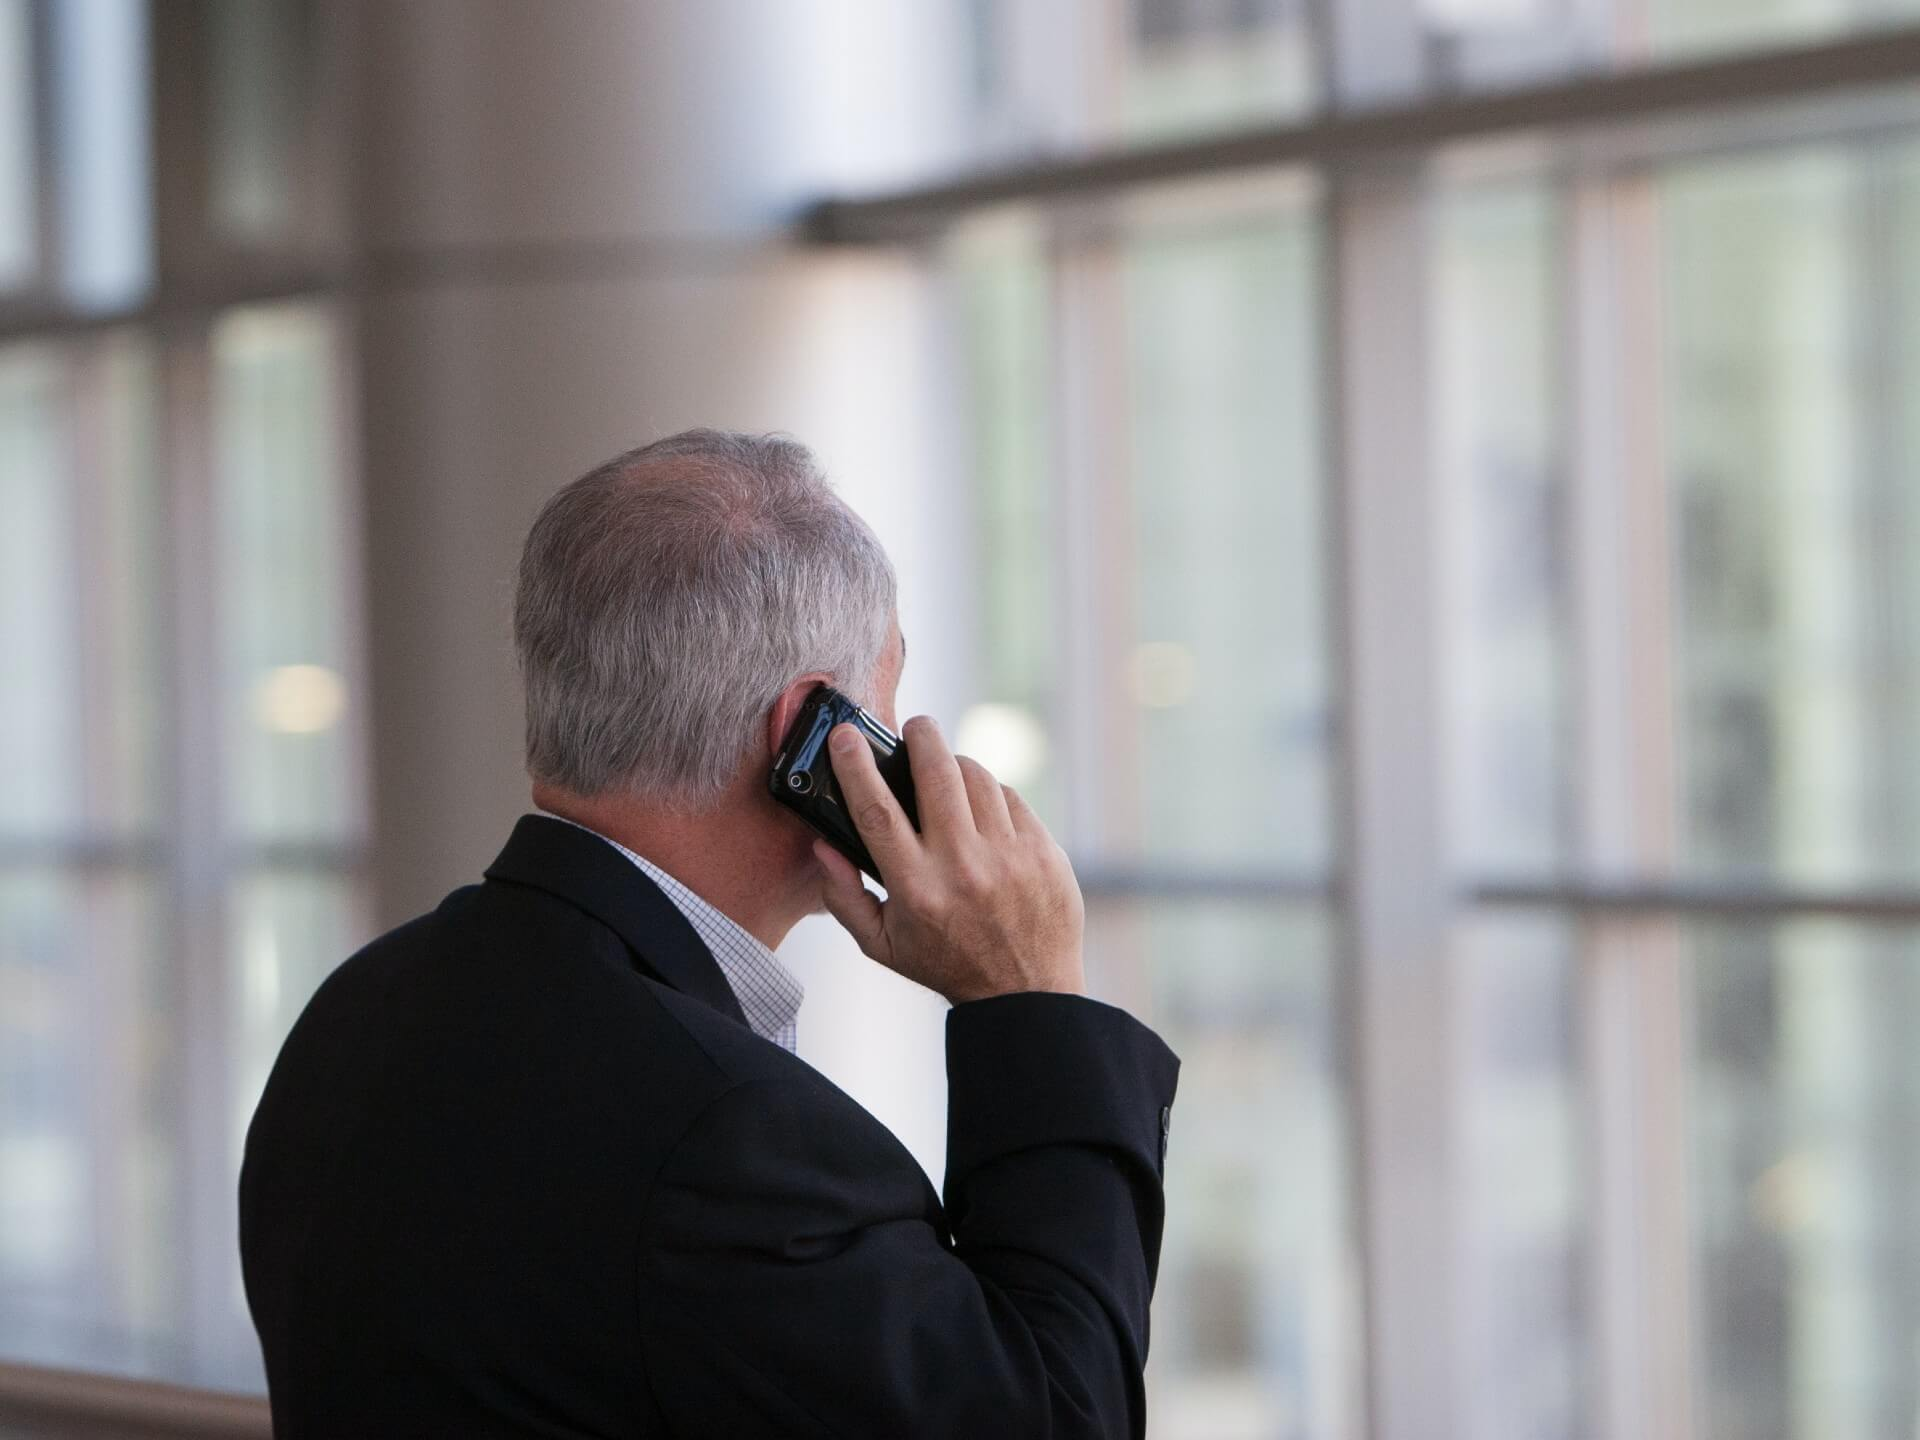 older man making a phone call to ConciMed to book his Podiatry consultation